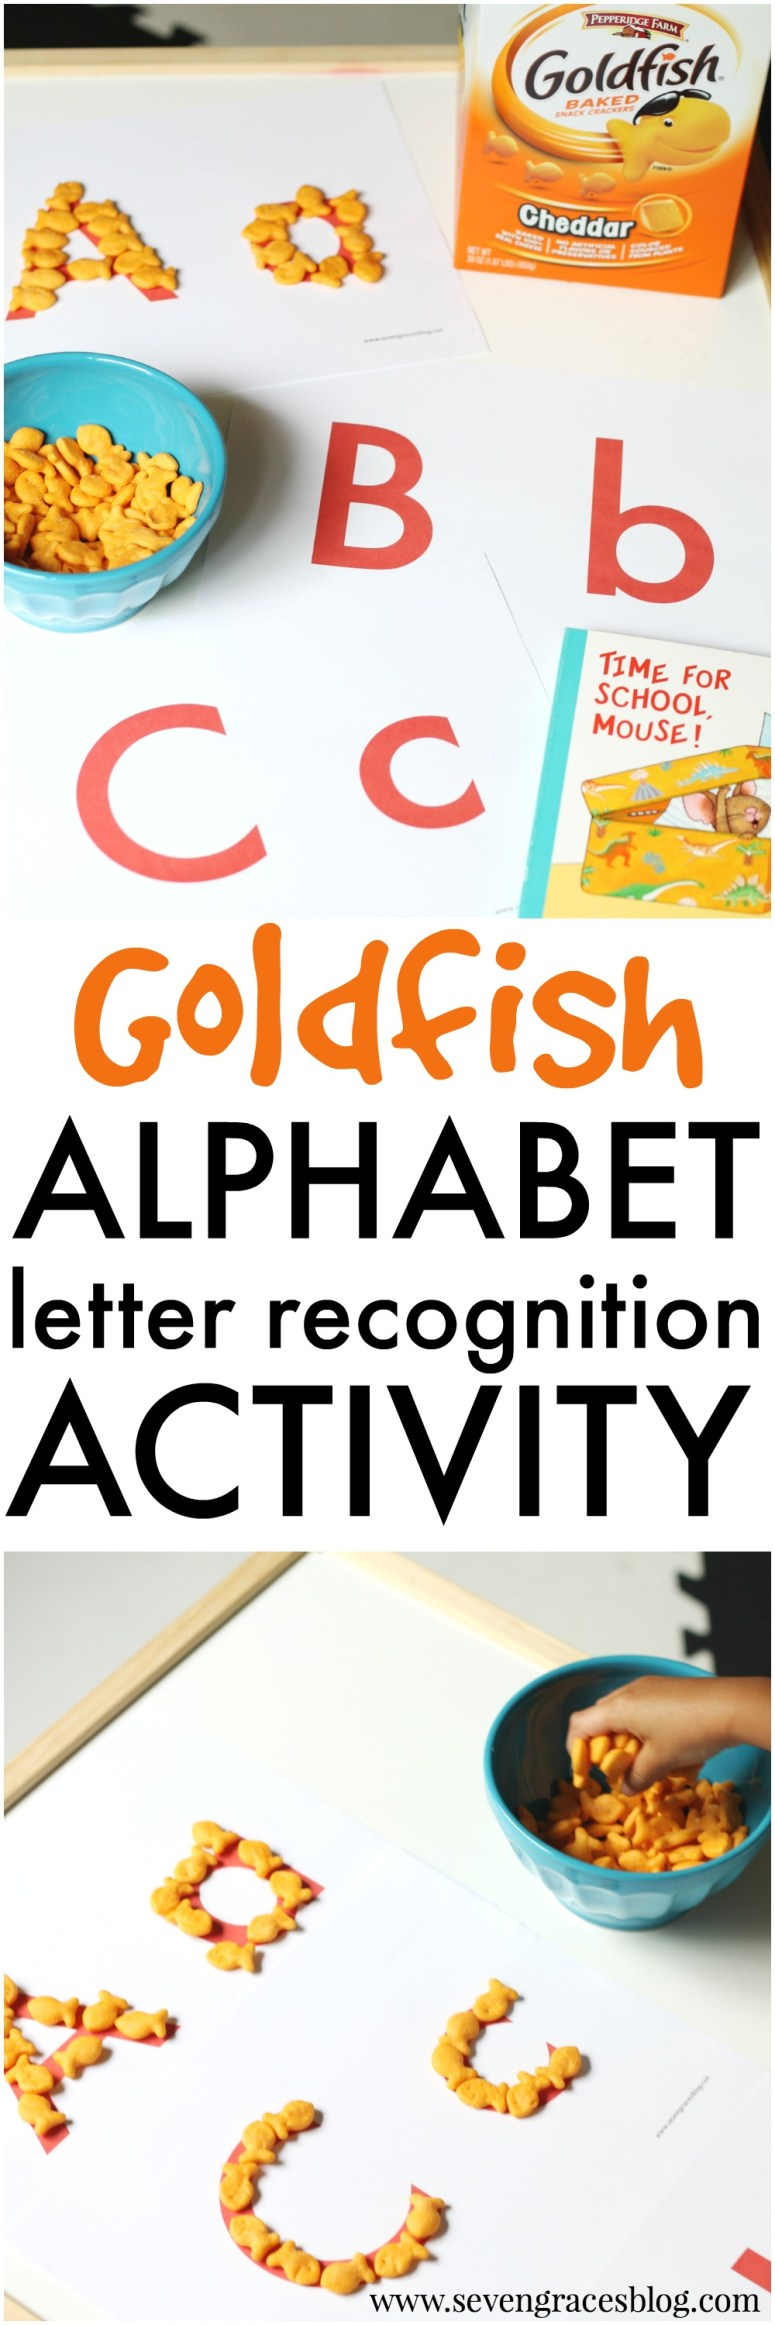 The best letter recognition activity for your preschooler using Goldfish crackers! This is a must try, and it includes a free printable of the alphabets. This free alphabet printable + great preschool activity is a winner.